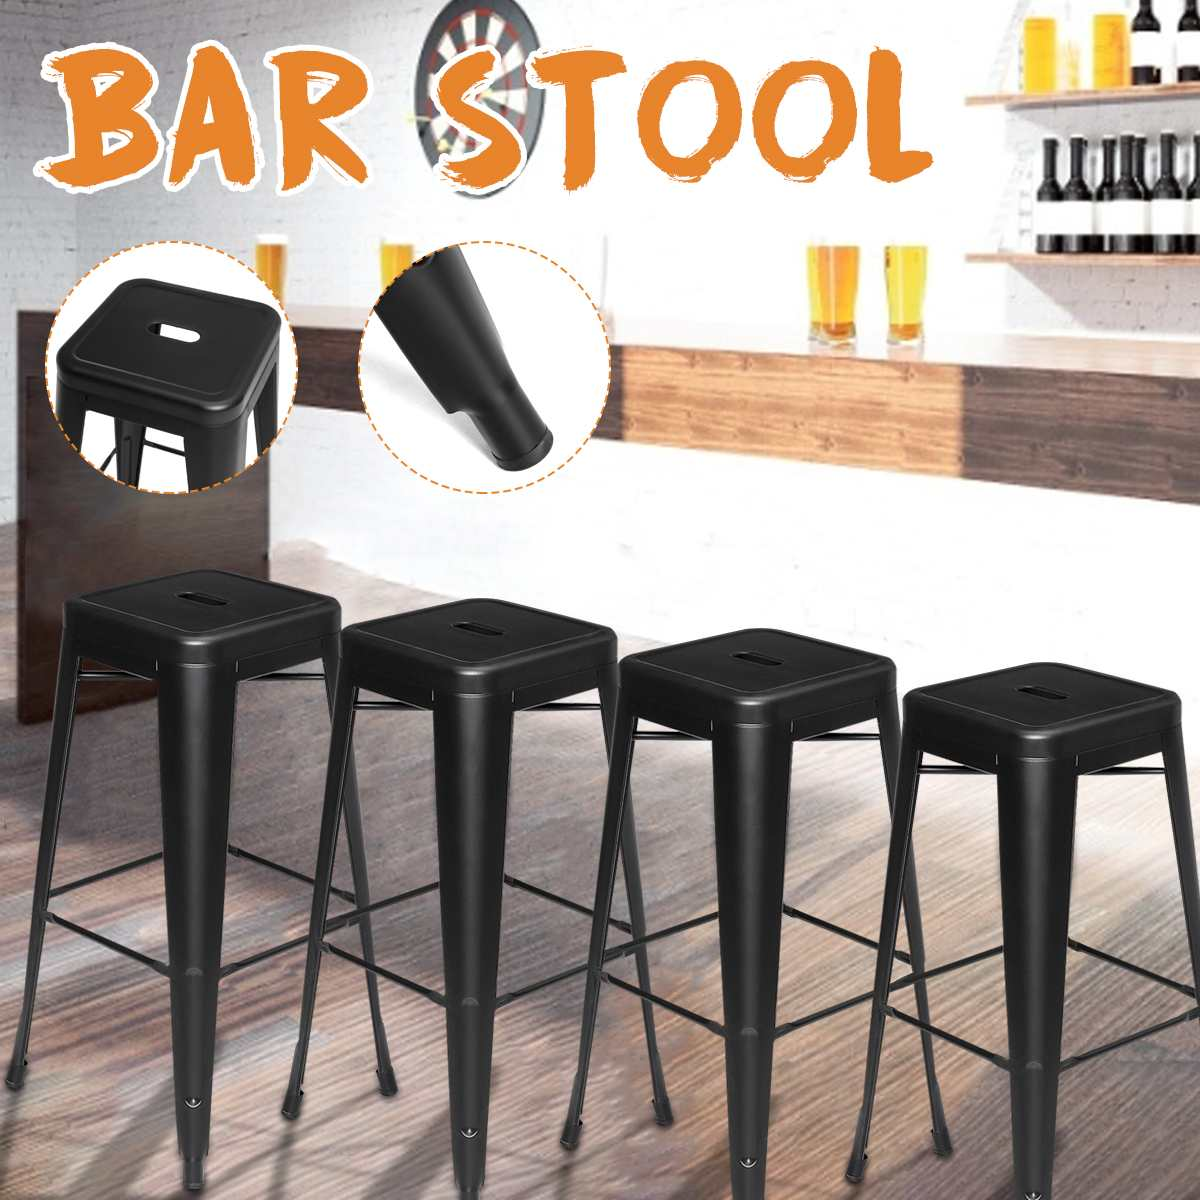 New 4 PCS Black Metal Nordic Bar Stool Modern Wrought Iron Bar Chair Fashion High Stool Dining Chair For Bar Home Kitchen